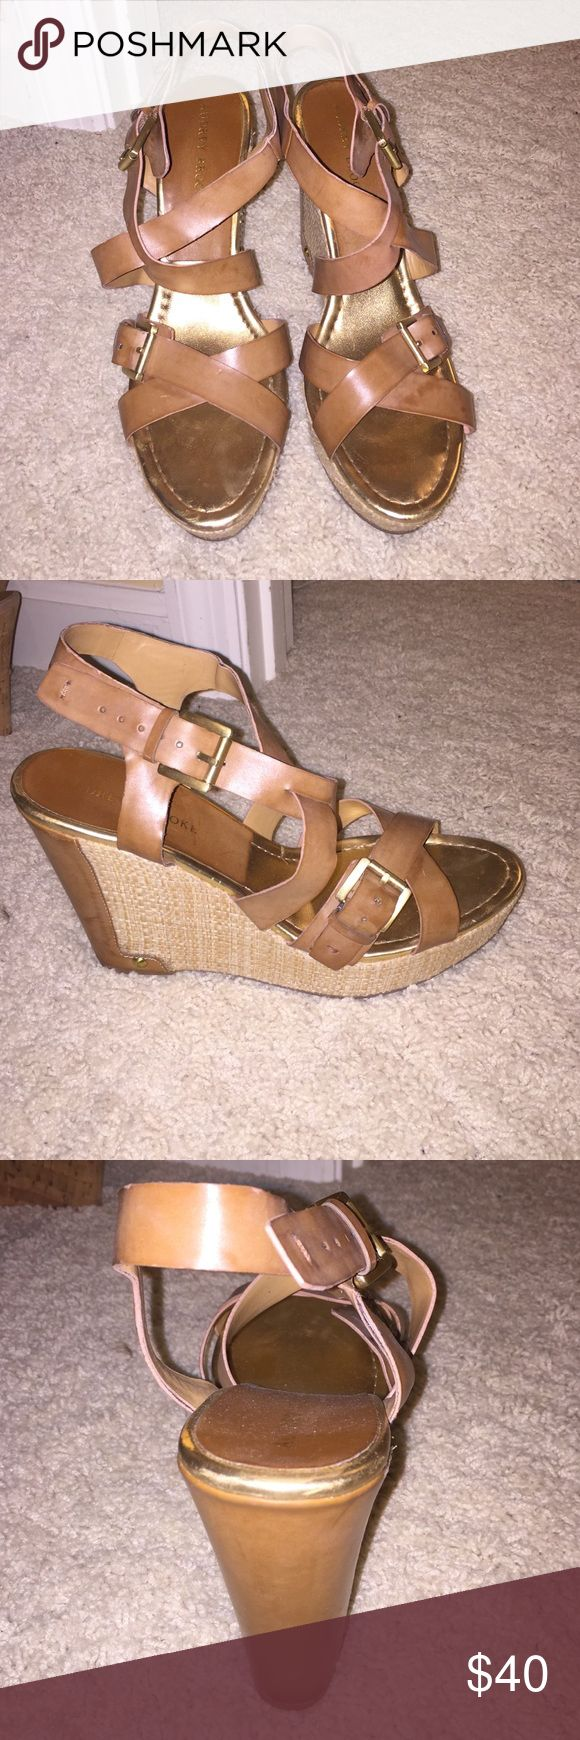 Audrey Brooke wedges tan wedges with gold buckles and detailing. back of the heel is detailed with leather and the rest of the wedge is woven. women's size 10, but do run a little small (im usually a 9-9.5 and they fit me) only worn a few times, super cute shoes that go great with any outfit! Audrey Brooke Shoes Wedges